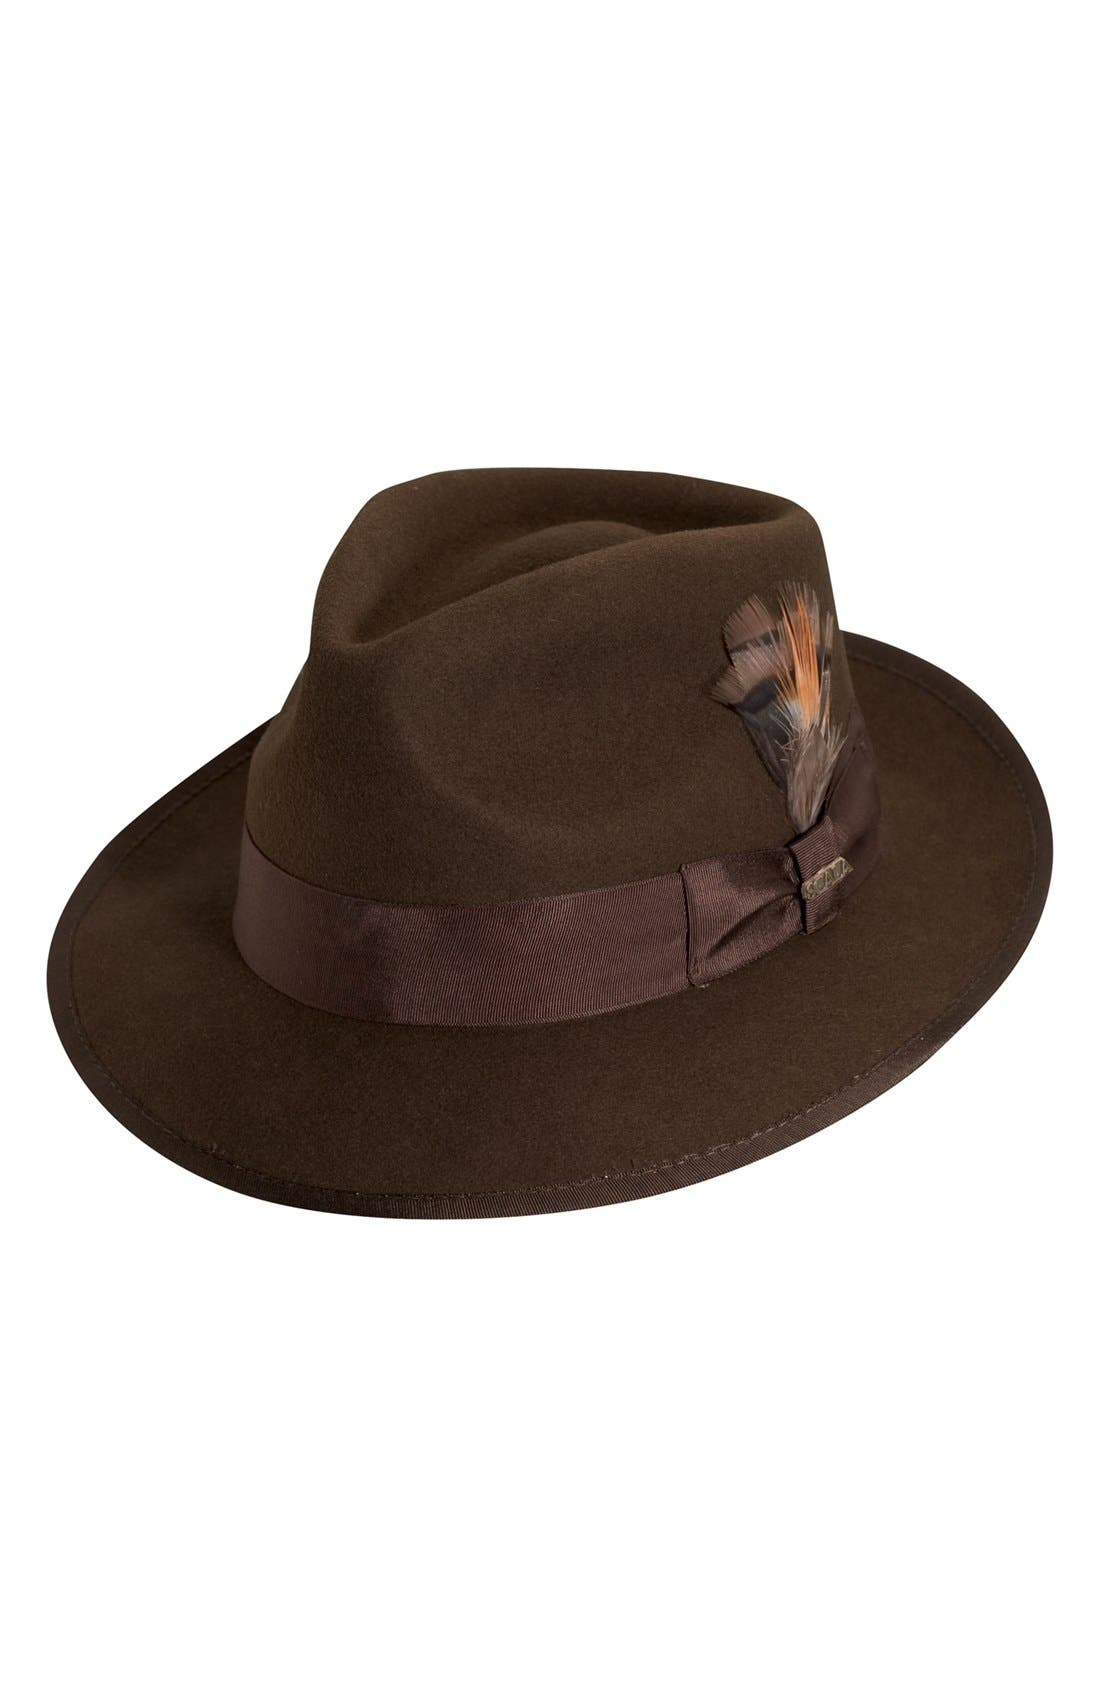 'Classico' Wool Felt Snap Brim Hat,                             Main thumbnail 1, color,                             Brown